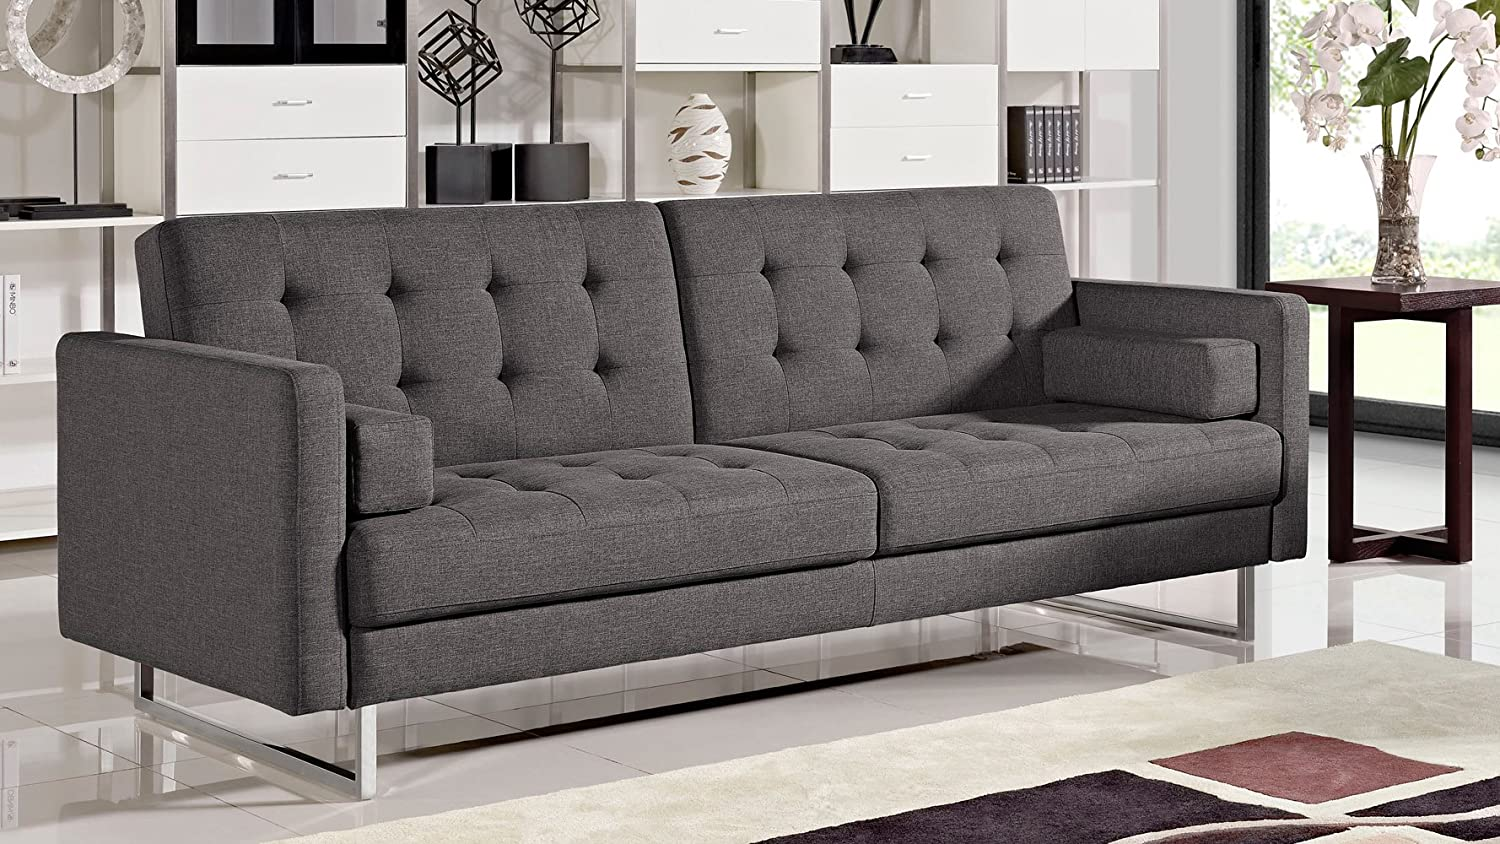 Amazon.com: Zuri Furniture Beta Fabric Sofa Bed with ...